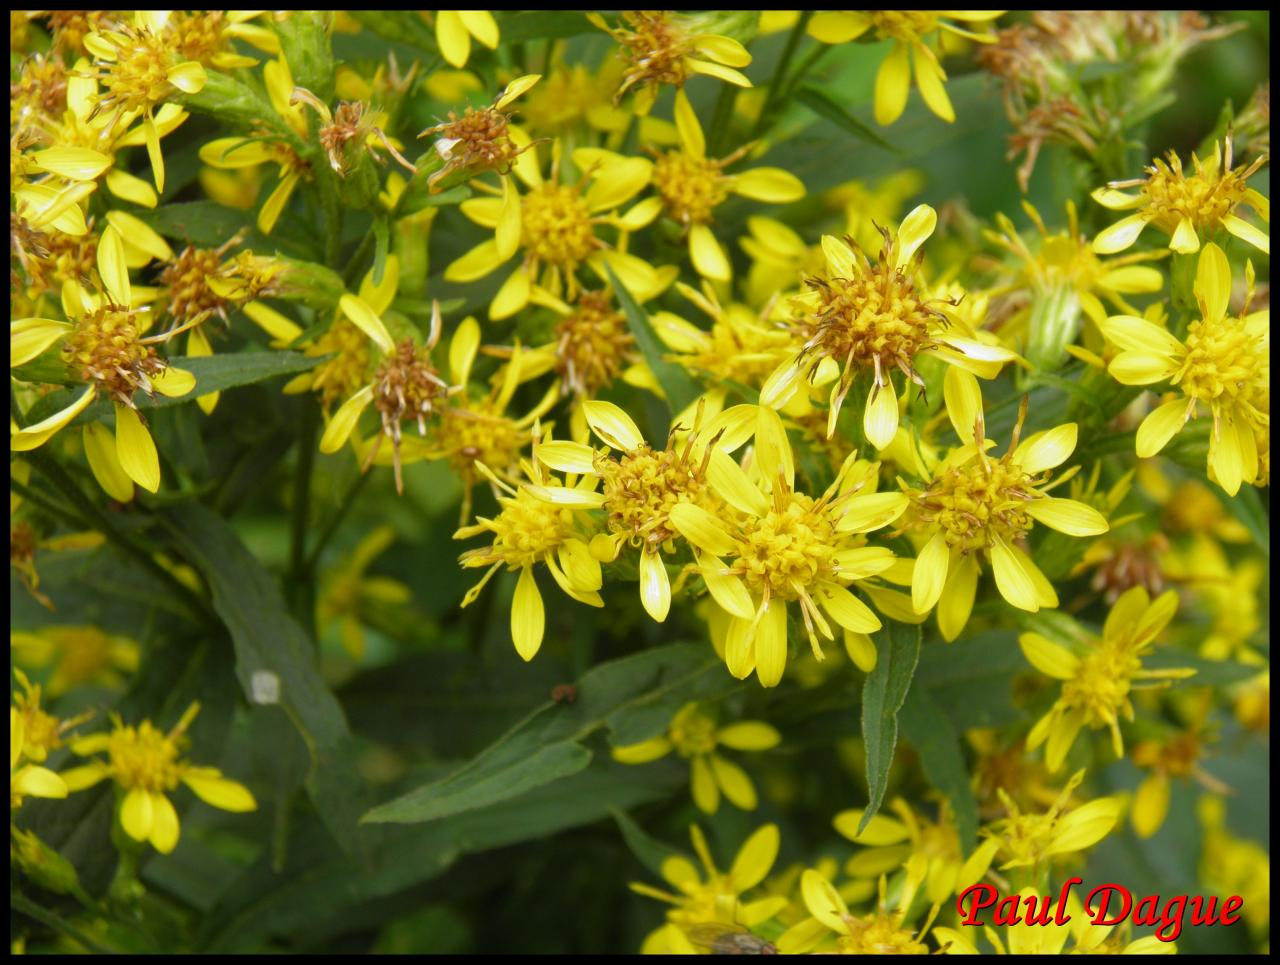 solidage verge d'or-solidago virgaurea-astéracée